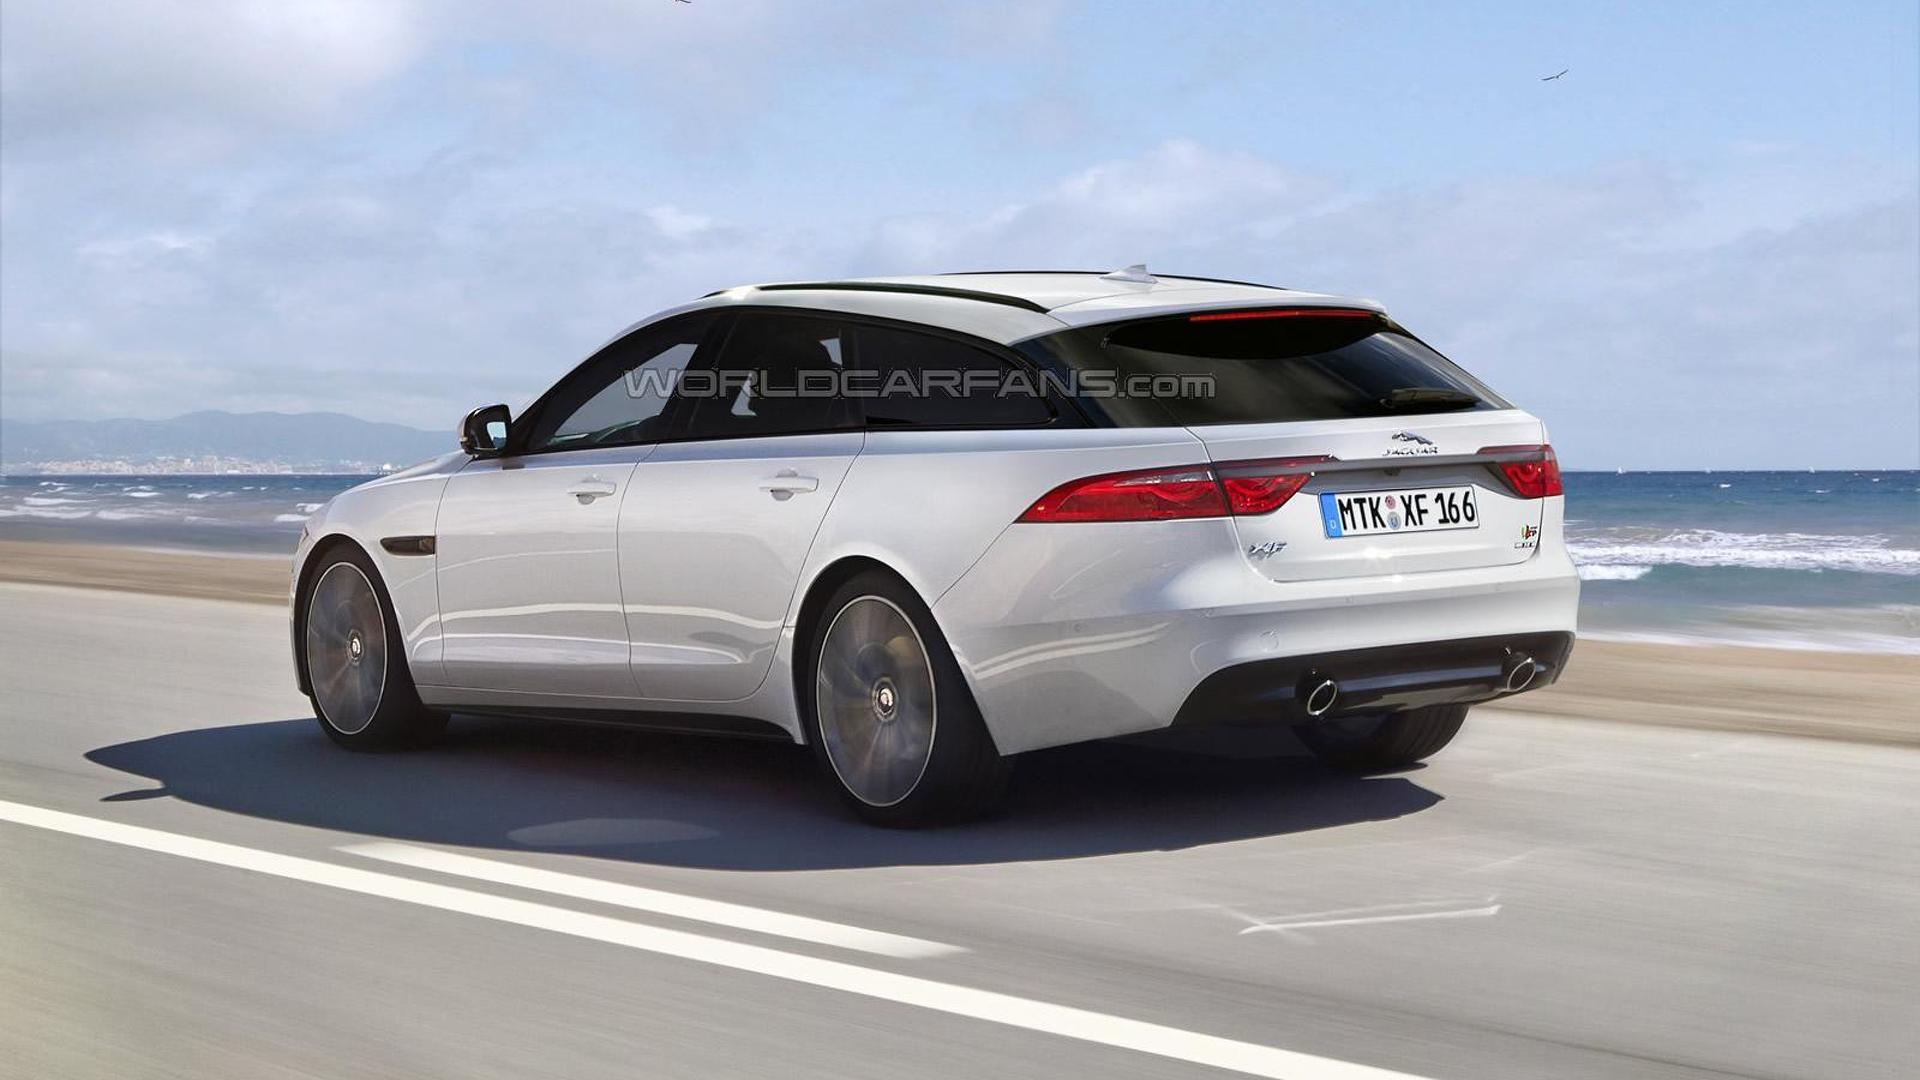 2016 Jaguar Xf Sportbrake Render Shows Plausible Look Motor1 Com